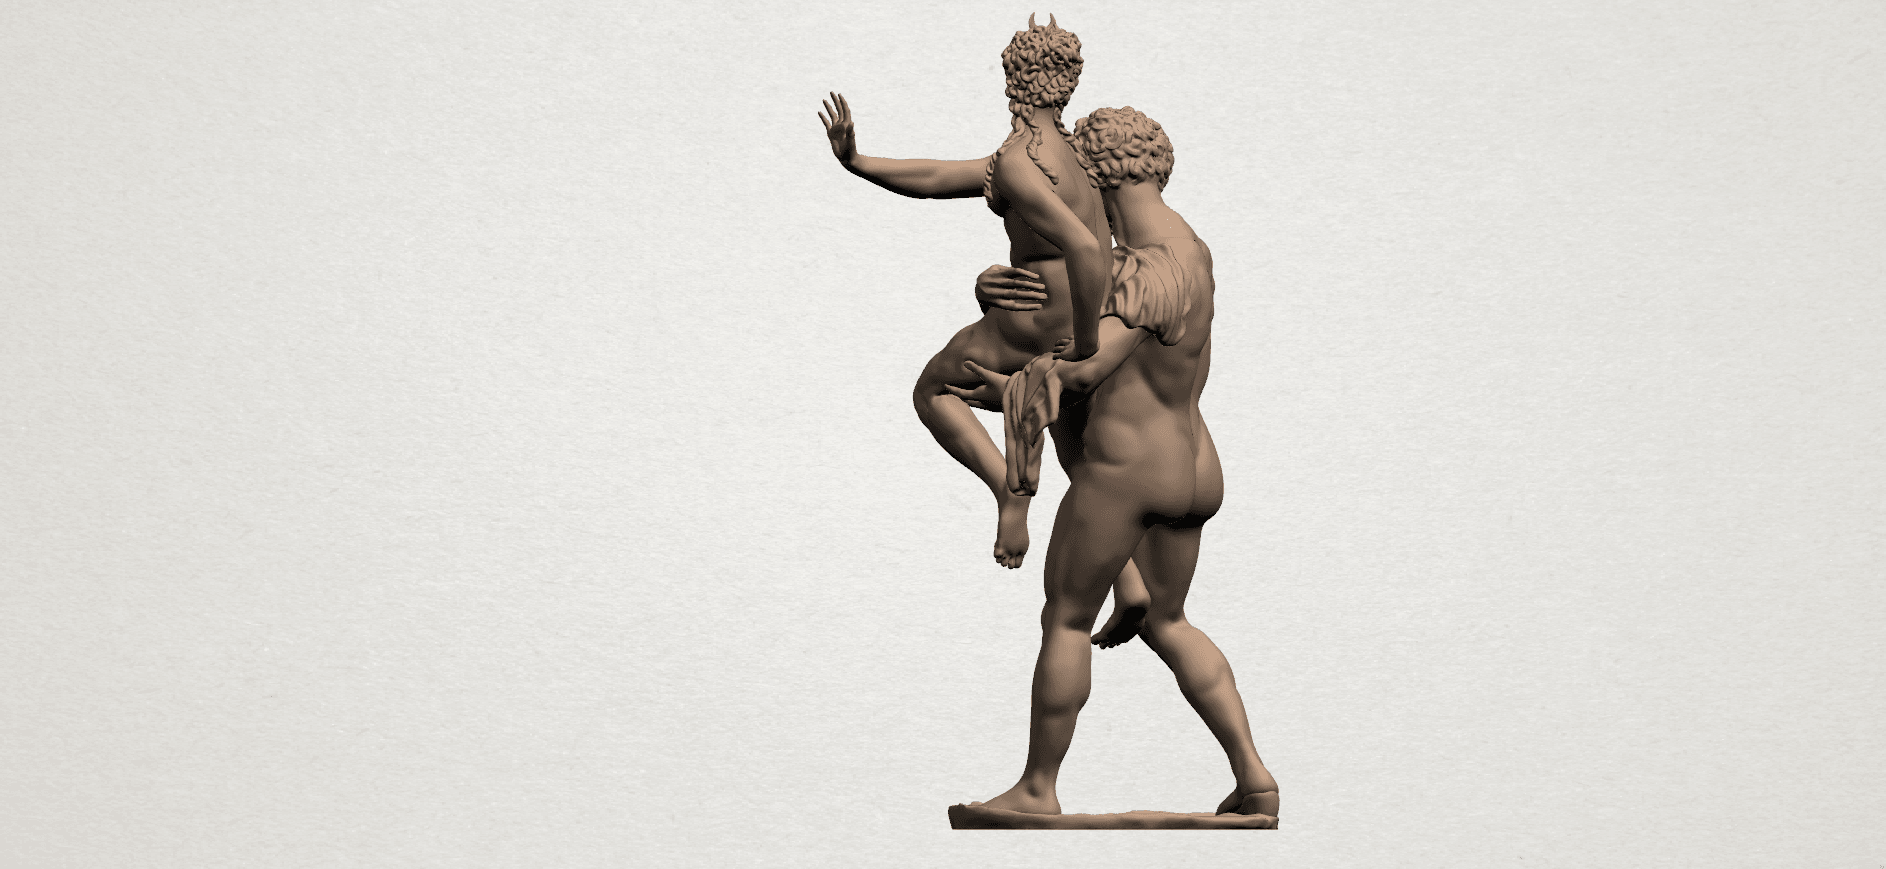 Naked Couple (iv) A03.png Download free STL file Naked Couple 04 • 3D printable model, GeorgesNikkei